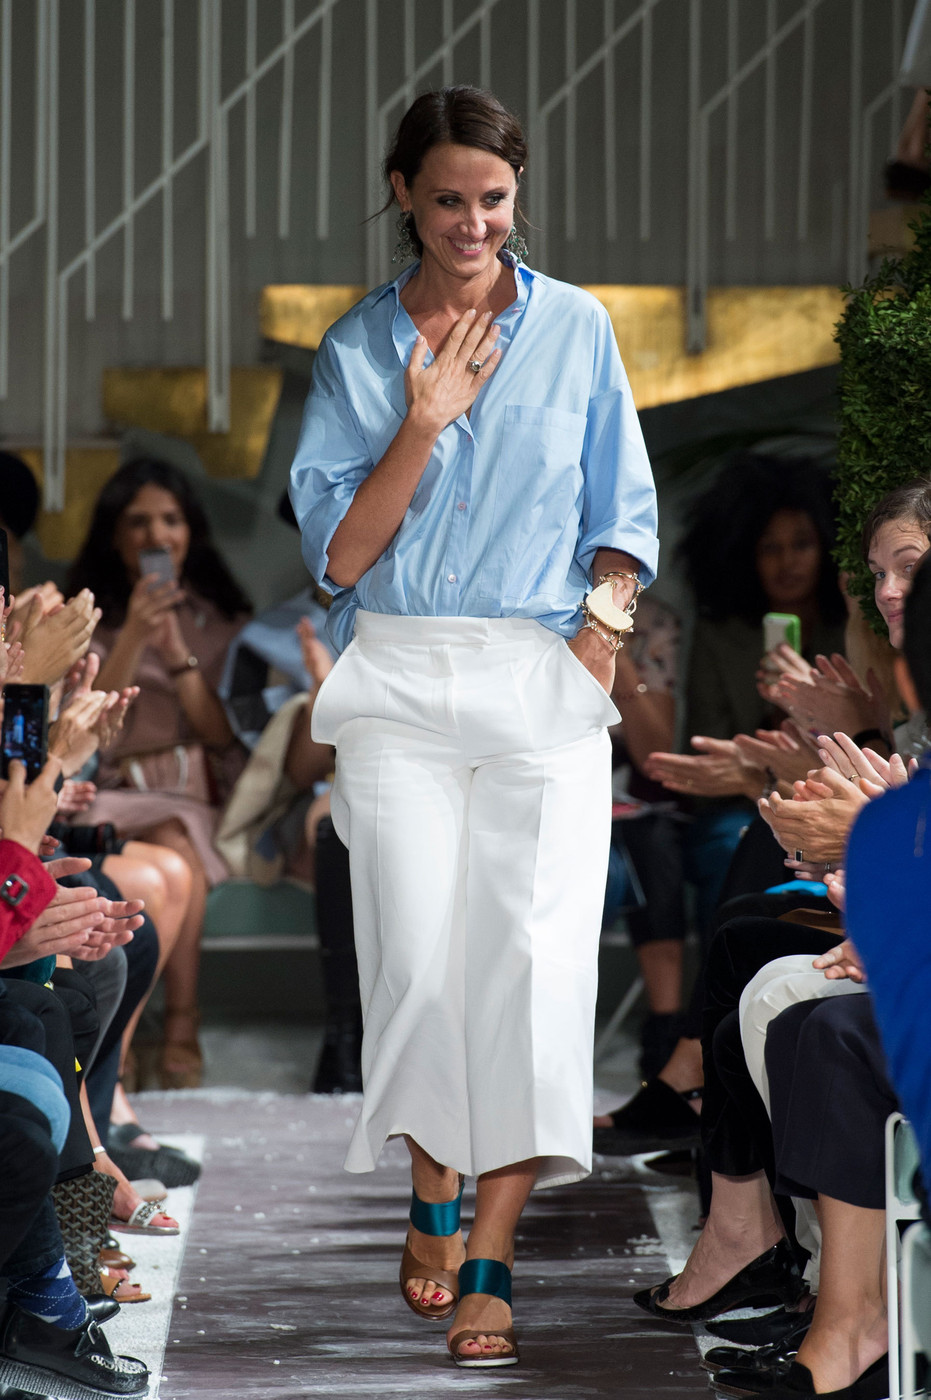 Alessandra Facchinetti at Tod's / fashion designer is leaving Tod's in 2016 / fashion news via www.fashionedbylove.co.uk